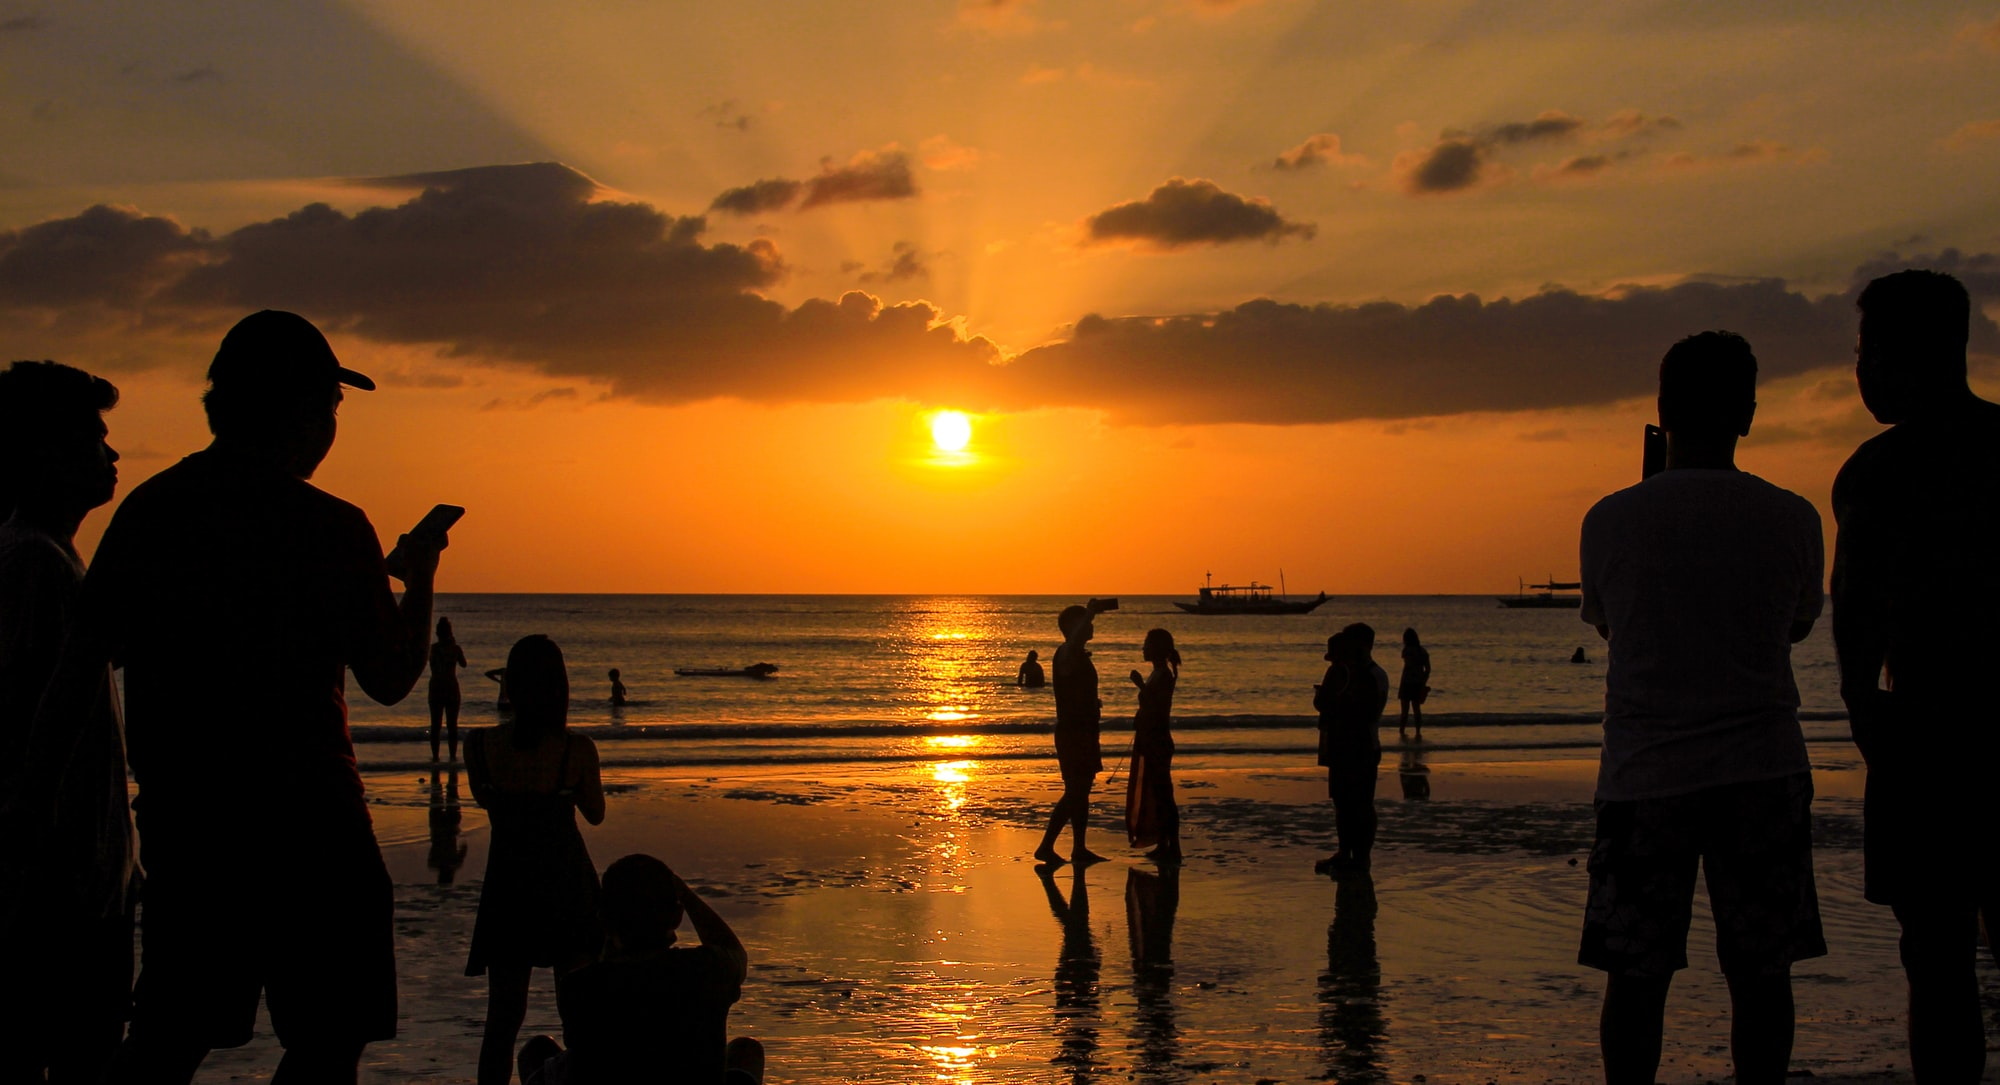 Crowd during sunset at Boracay